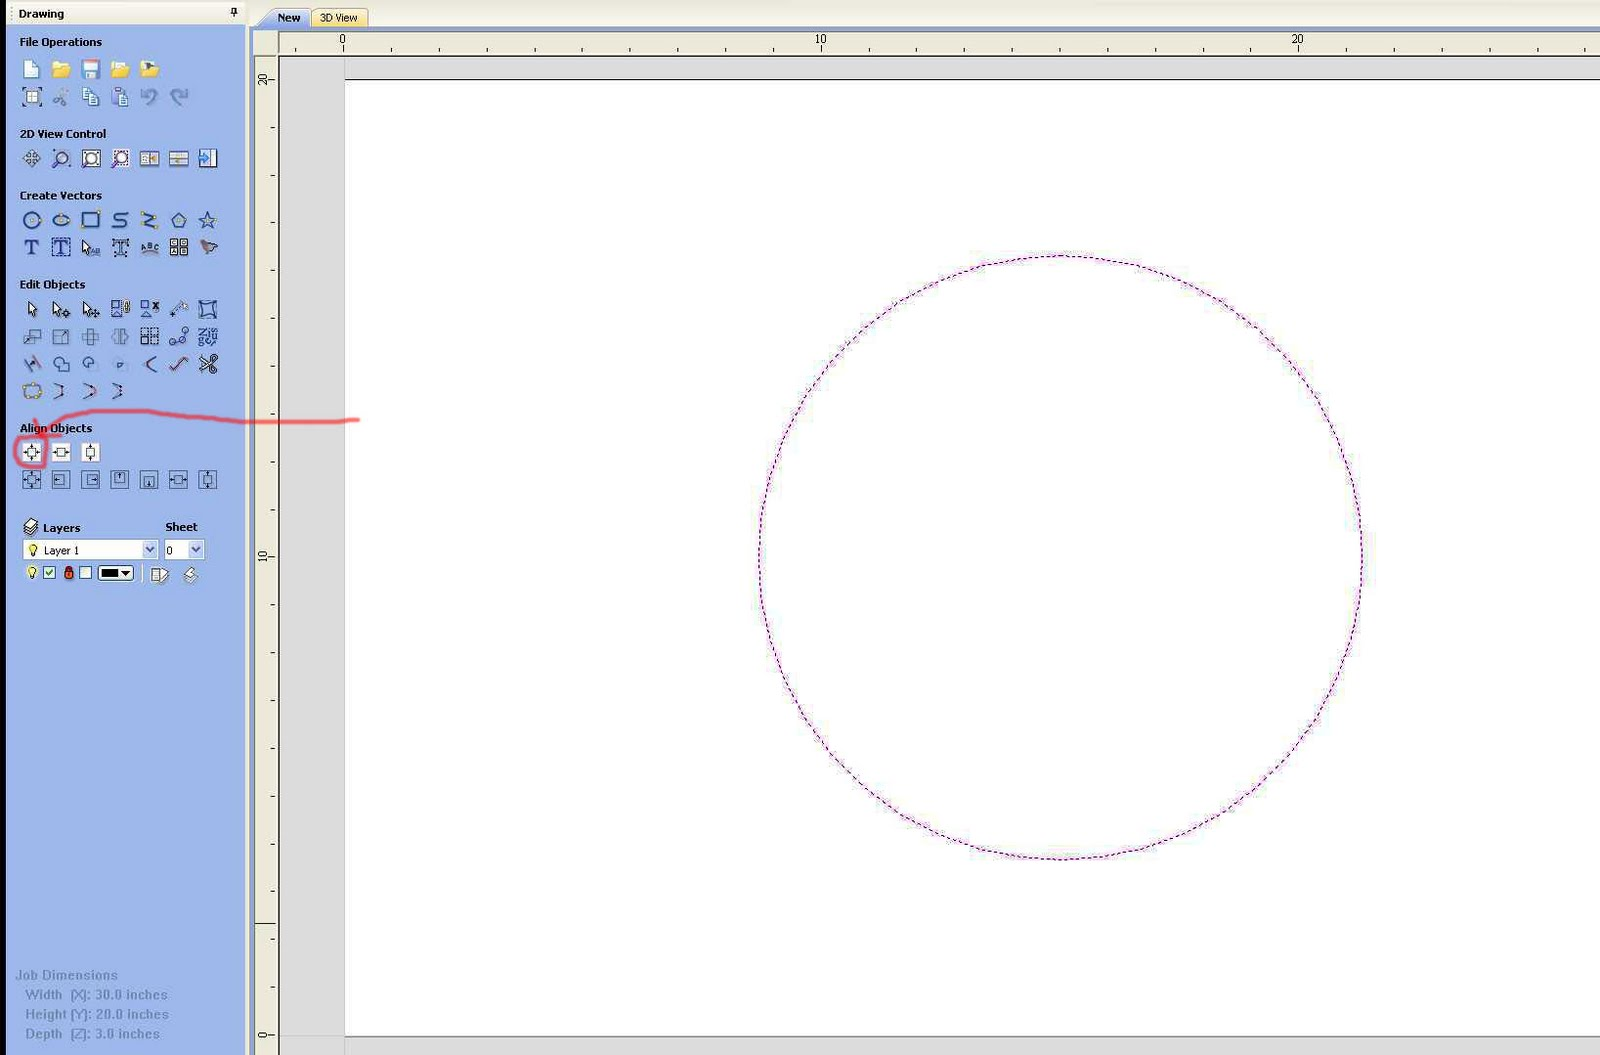 how to draw a decagon outside a circle